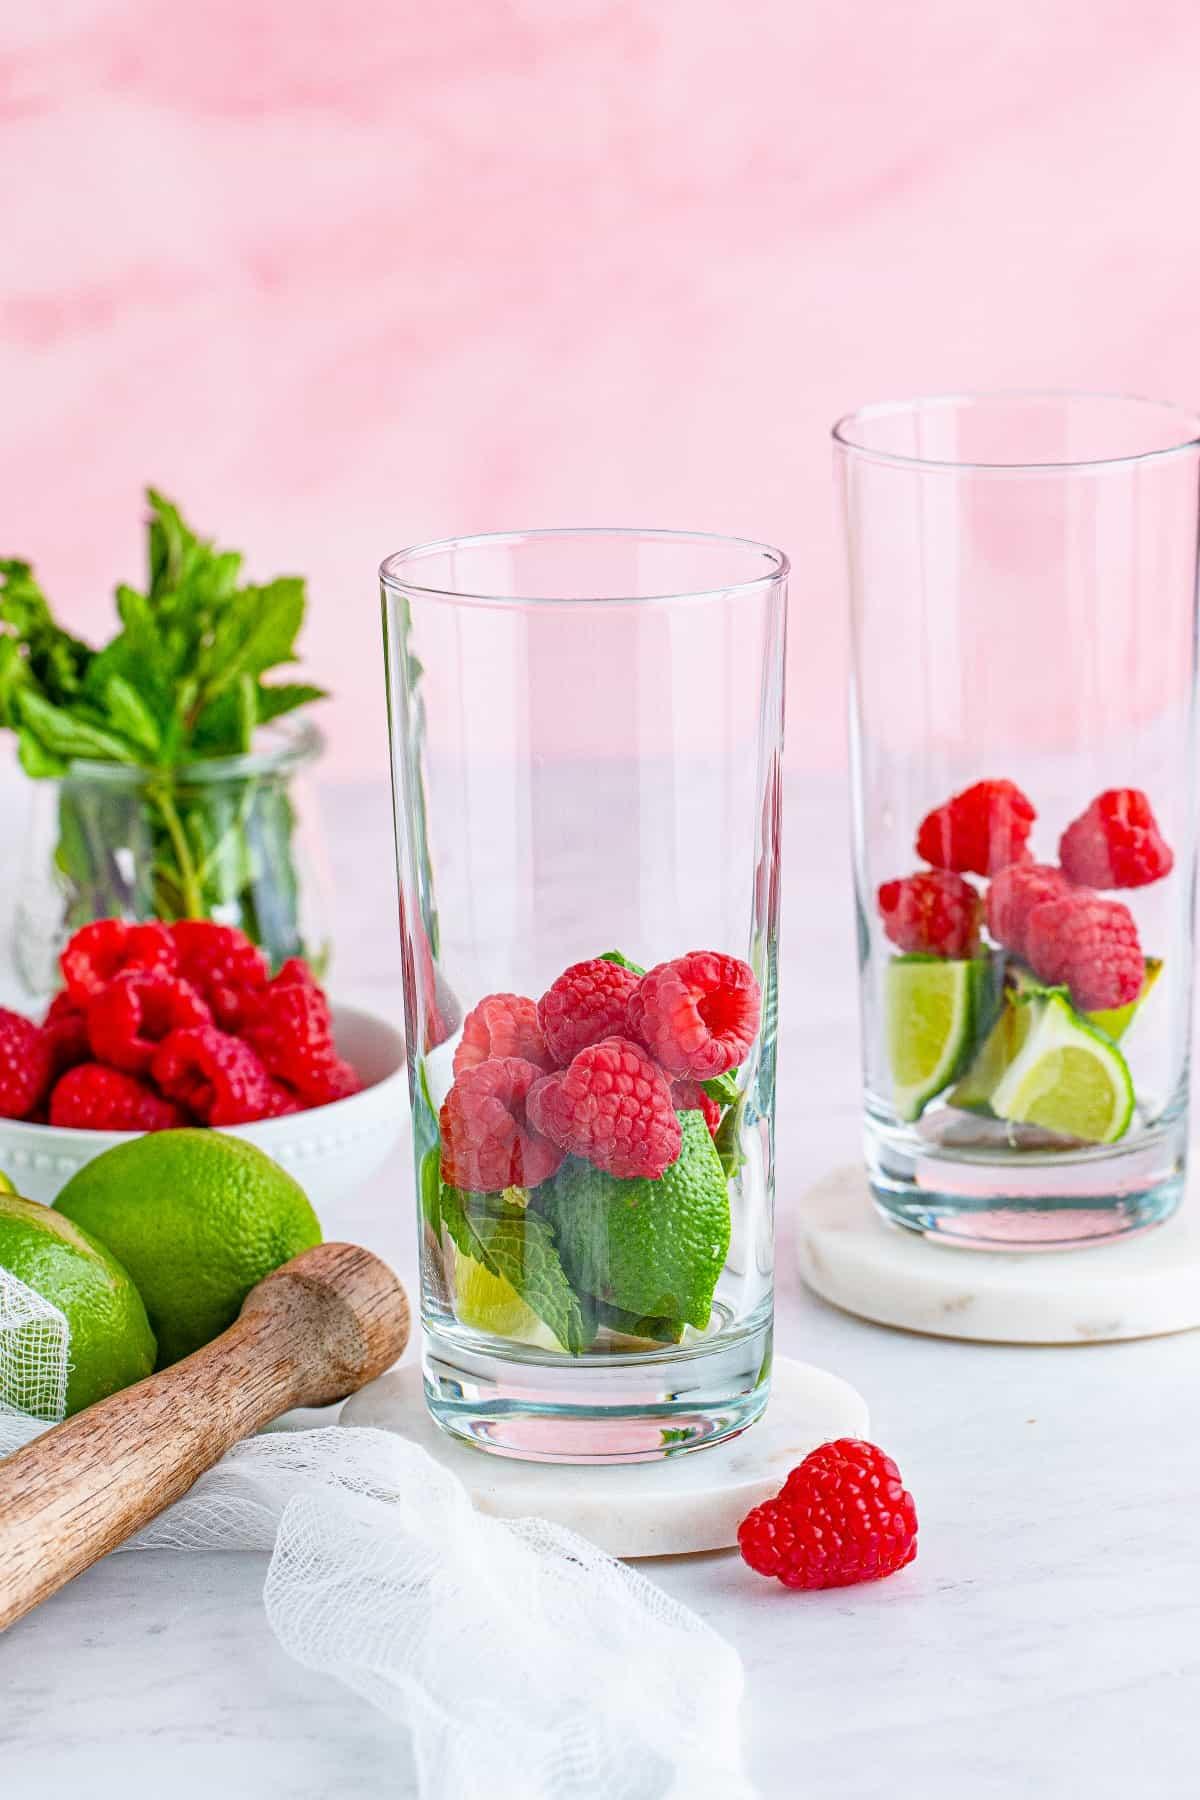 Raspberries, limes and mint in a glass.